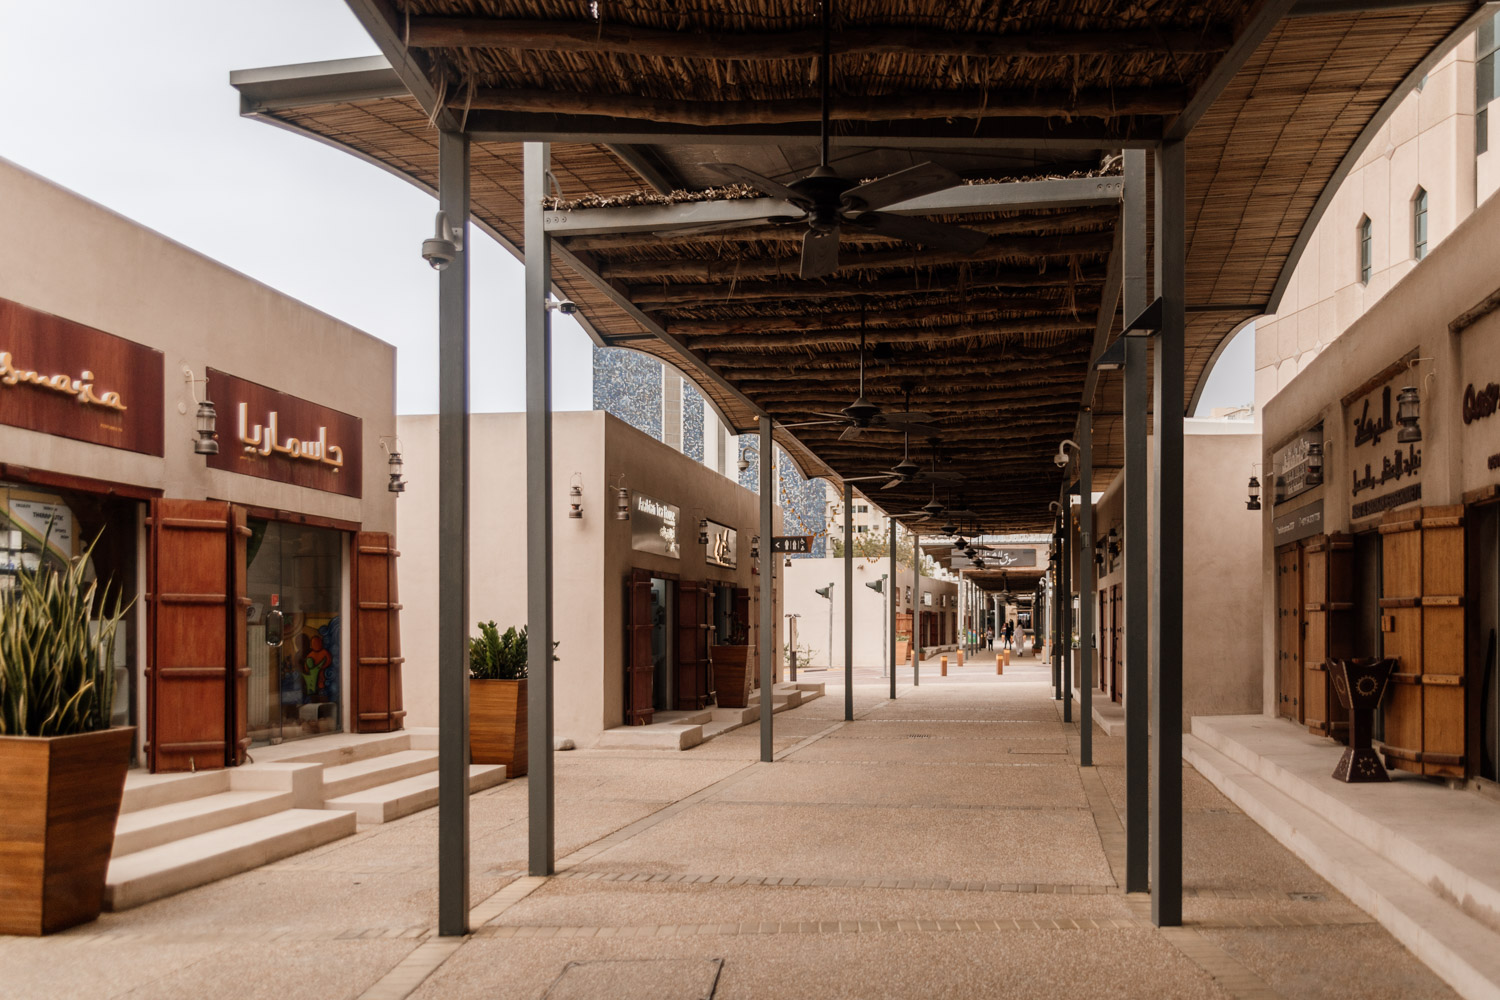 Souq Al Shinasiya, Sharjah